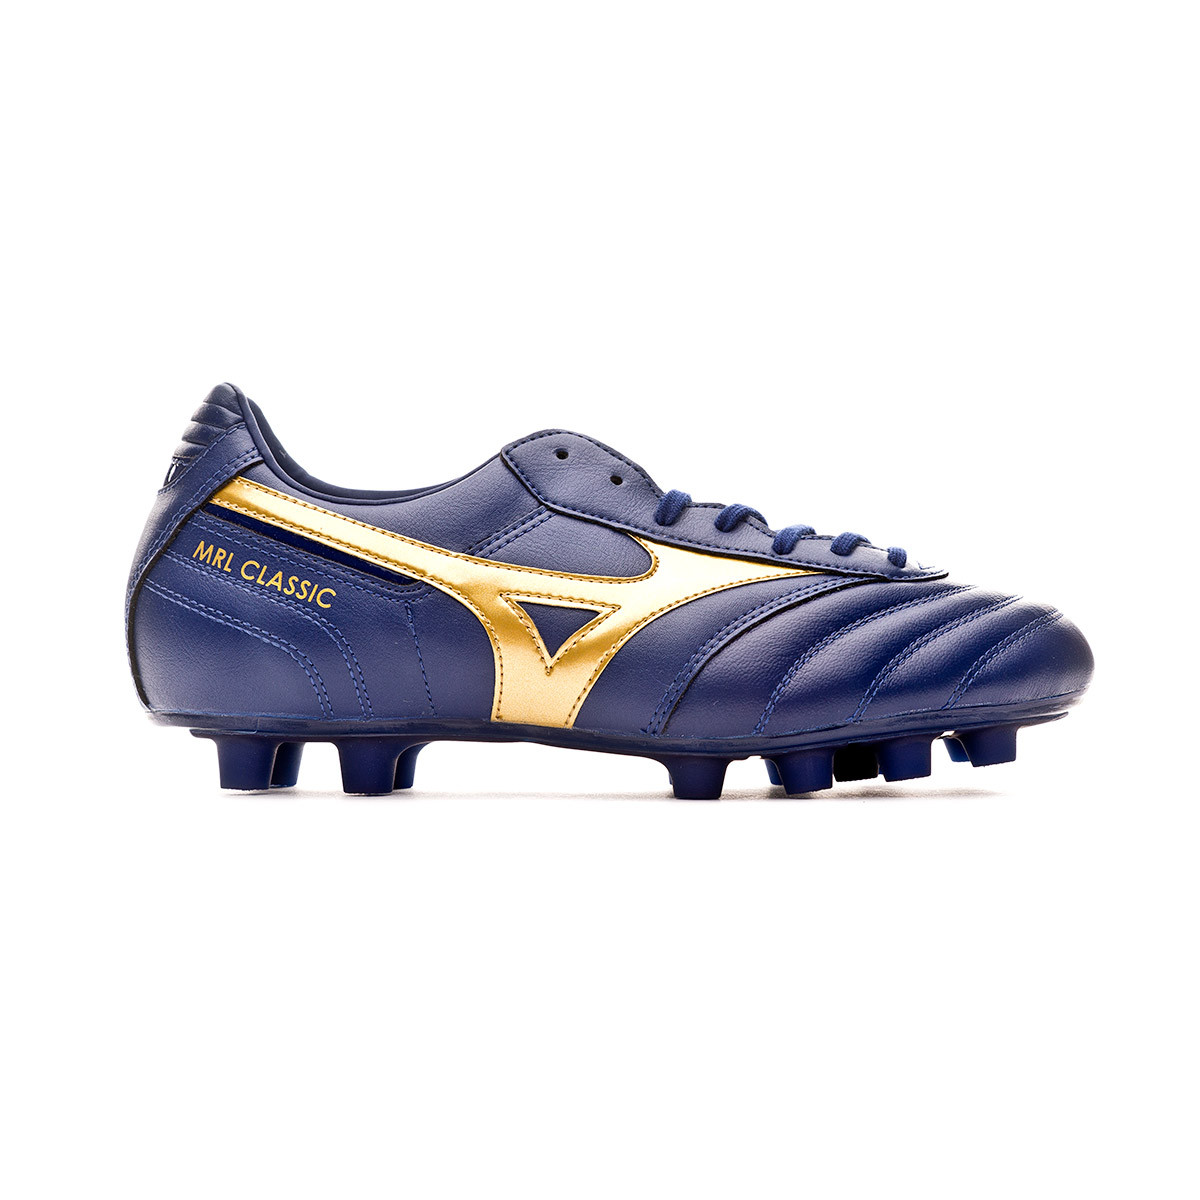 low priced dc6af e5508 Bota Morelia Classic MD Blue depths-Gold